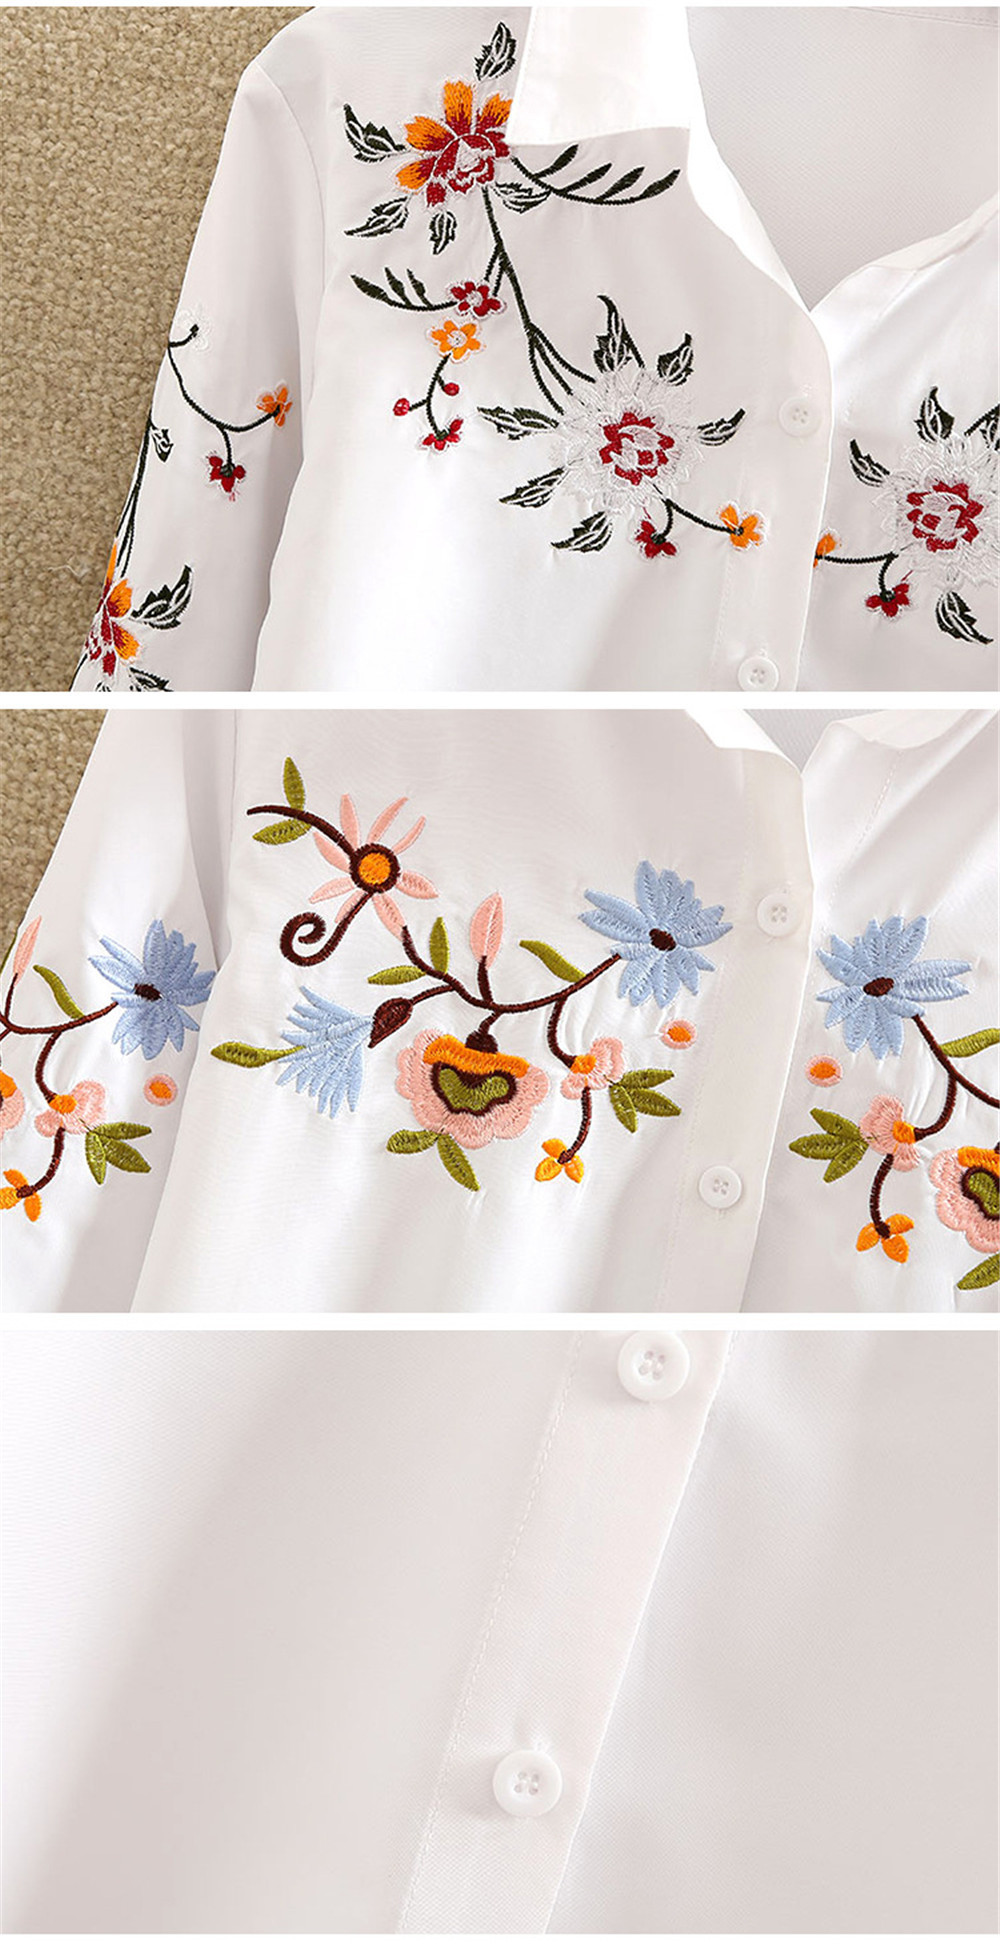 Floral Embroidery White Shirt Blouse  2020 Spring Casual TopTurn Down Collar Long Sleeve Cotton Women's Blouse Feminina 1518 (4)